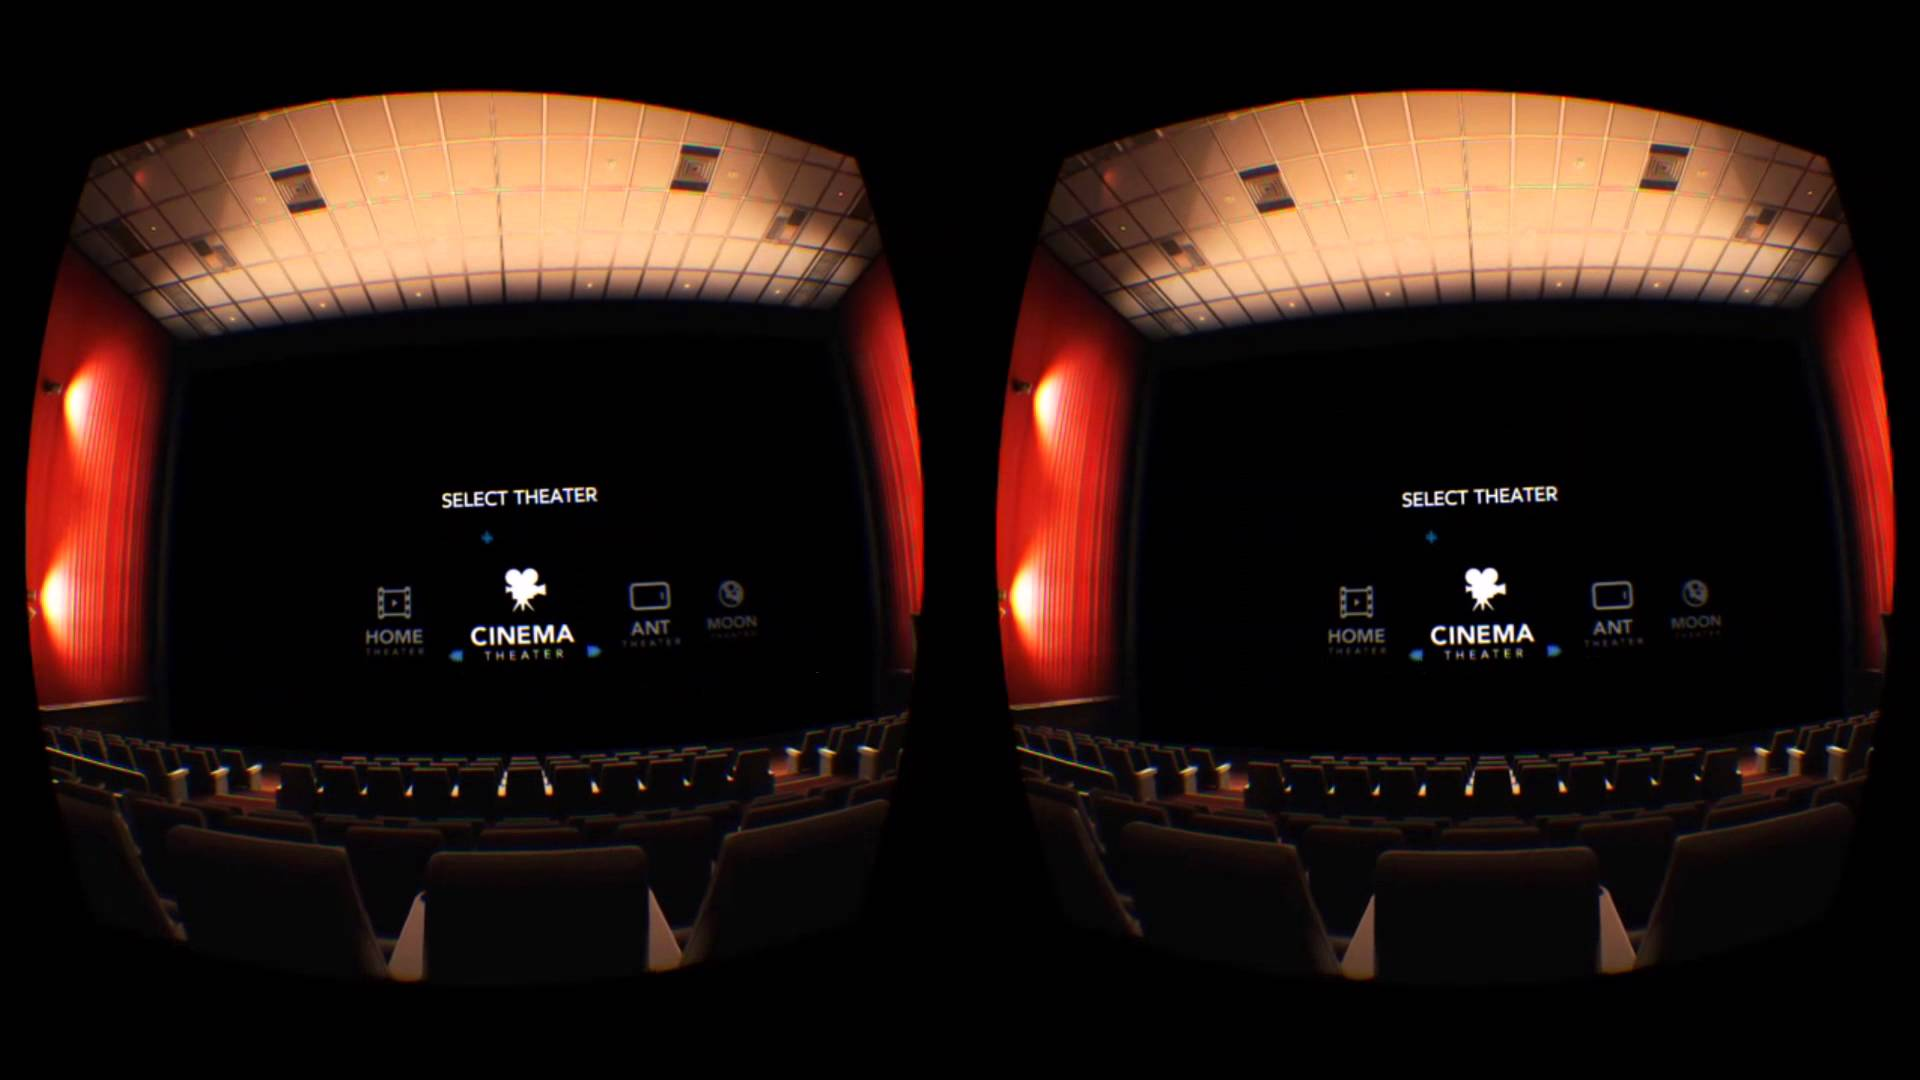 Video Hands-On: Twitch, Vimeo, and Movies Come to Gear VR